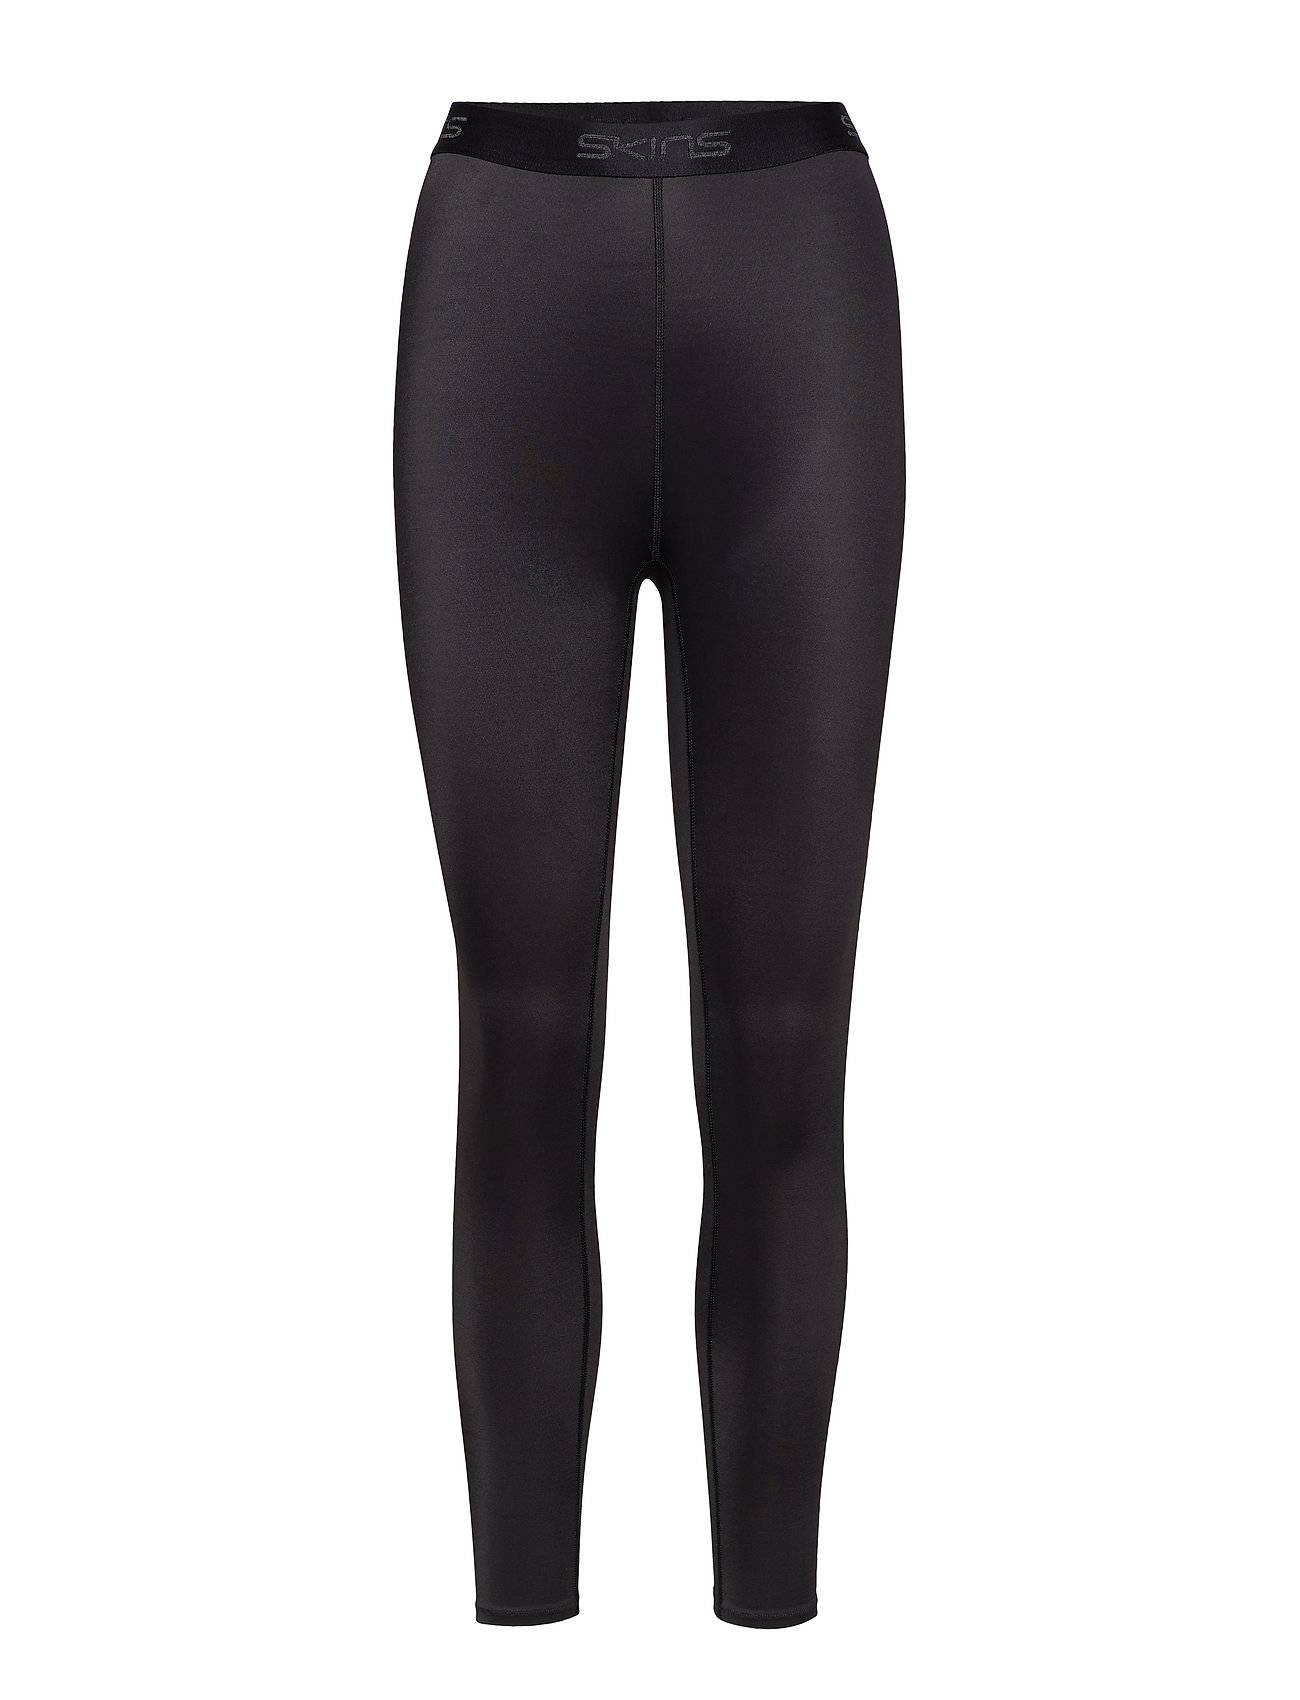 Image of Skins Dnamic Womens 7/8 Tights Running/training Tights Musta Skins